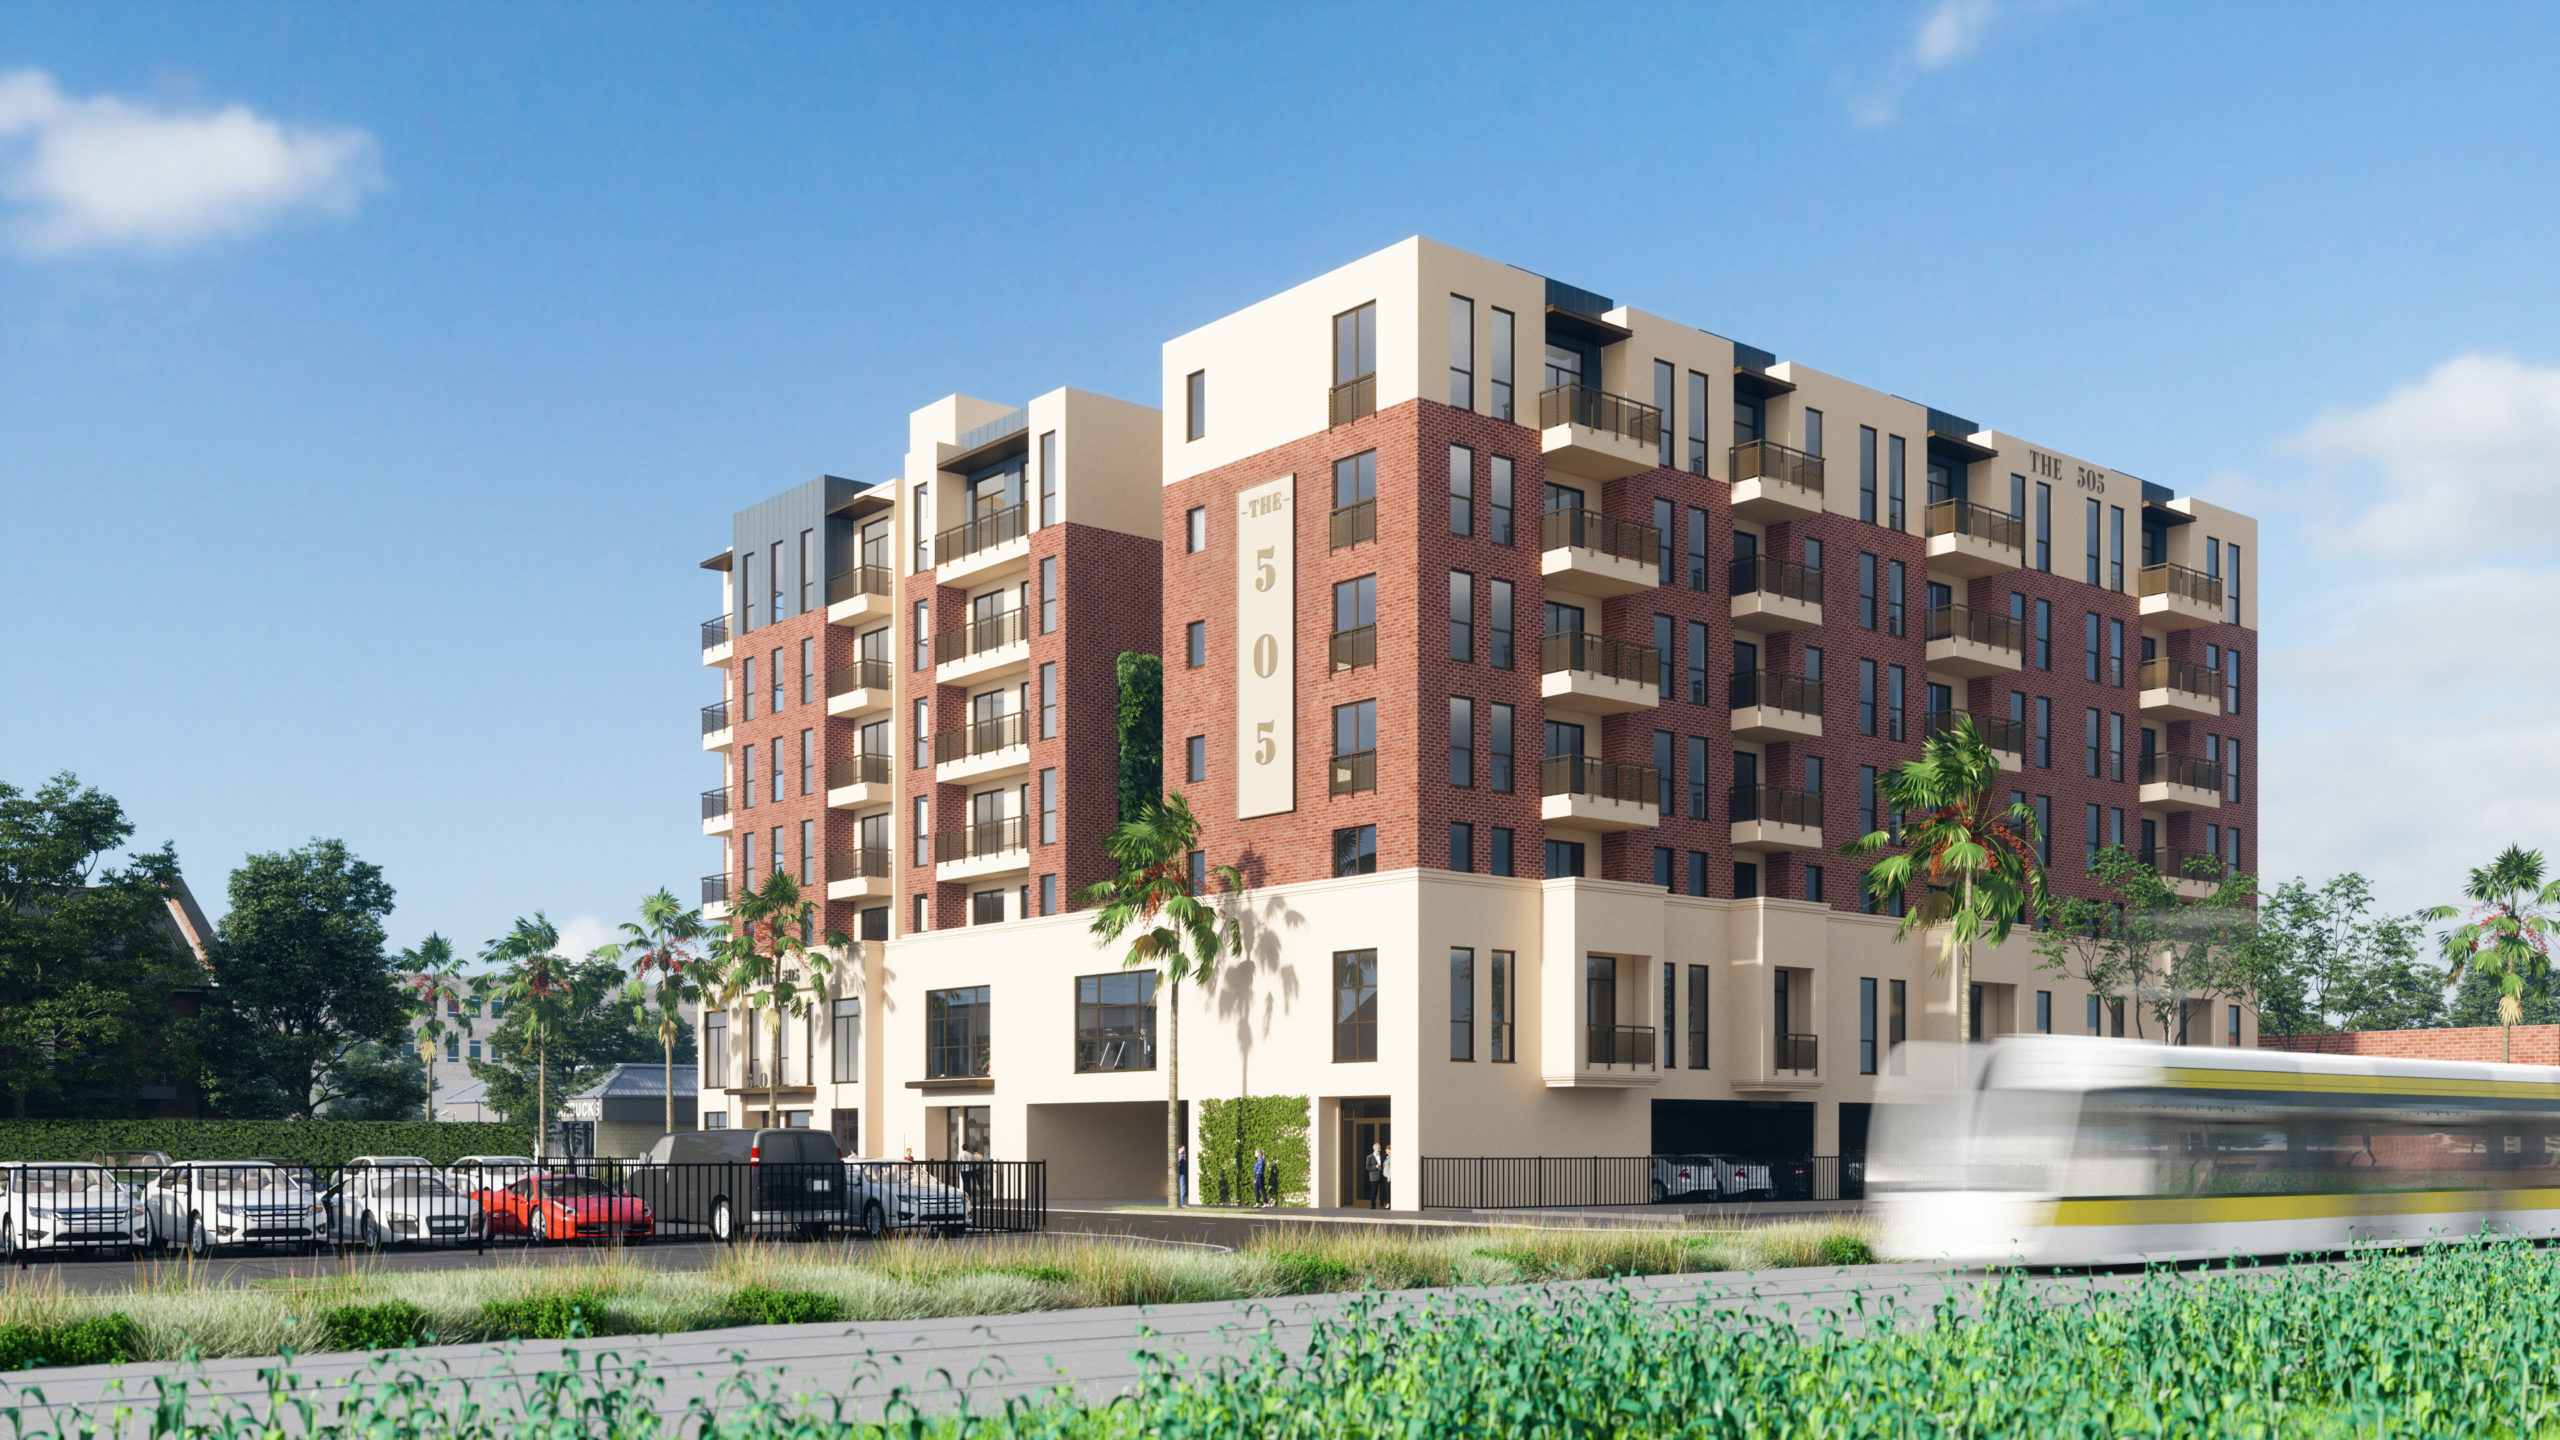 outdoor rendering of apartment complex with parking, bullet train, and garden area